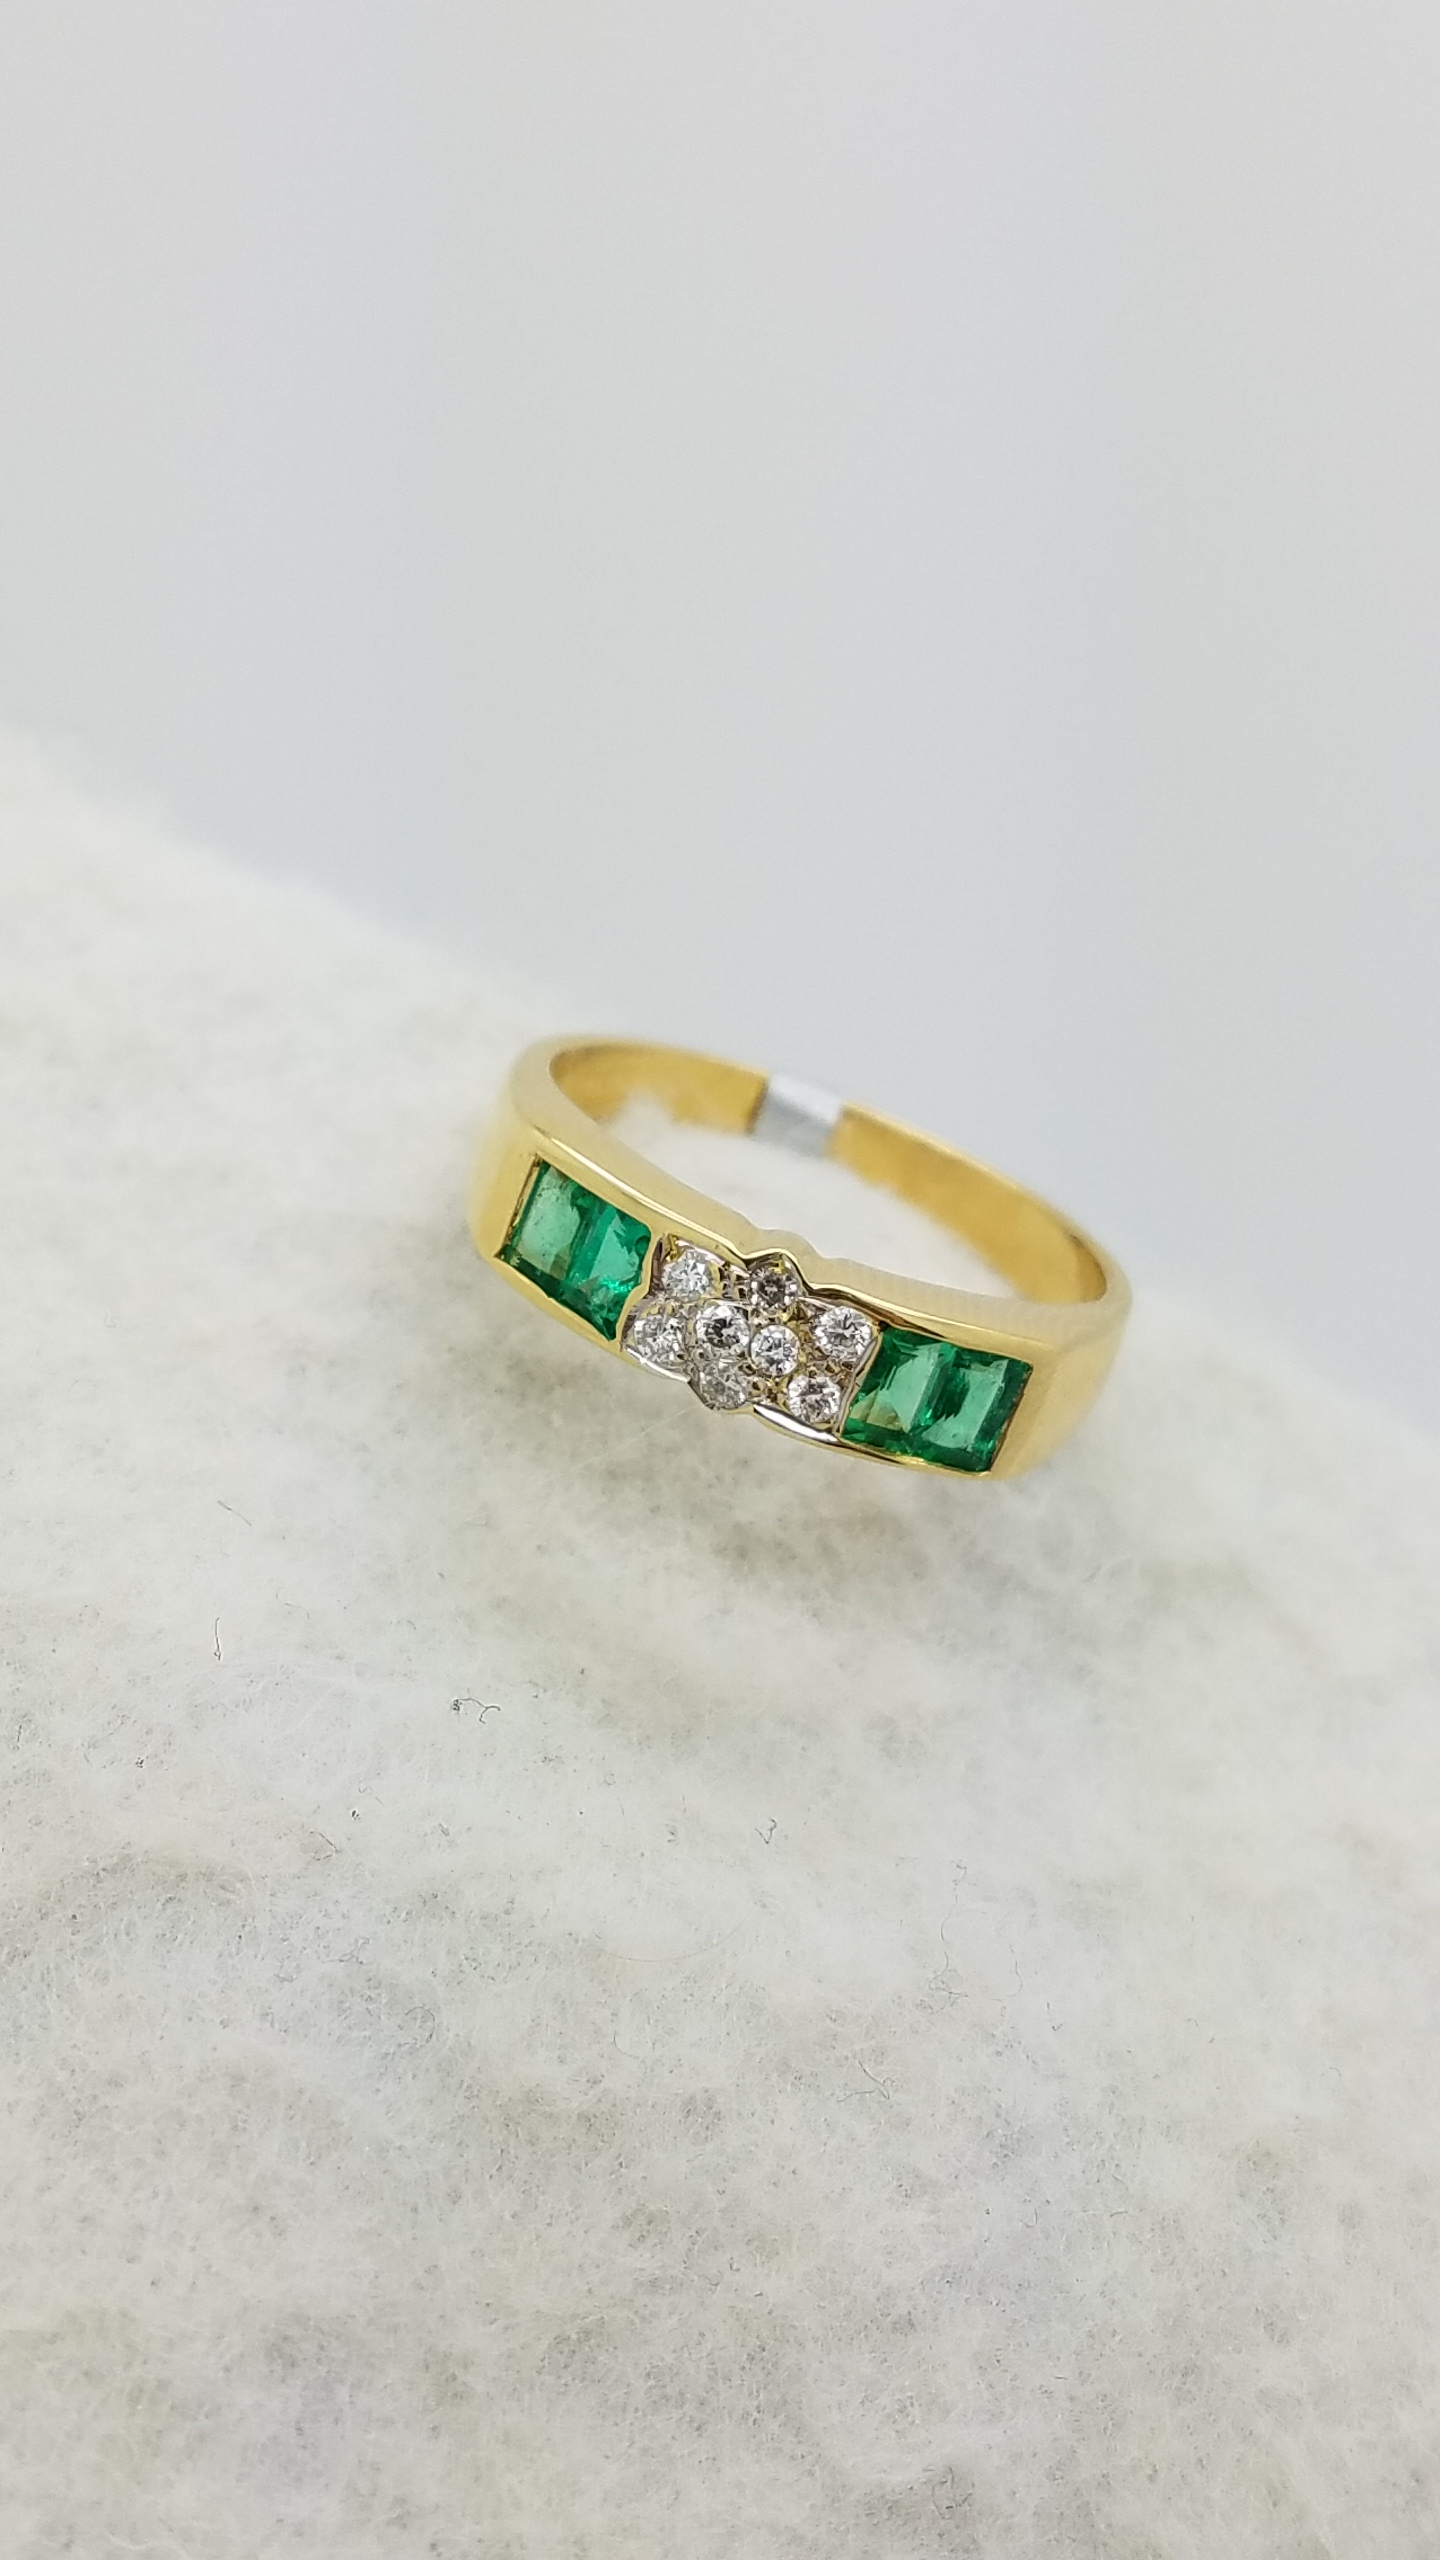 18K Yellow Gold EMERALD Cut EMERALD DIAMOND CLUSTER ring